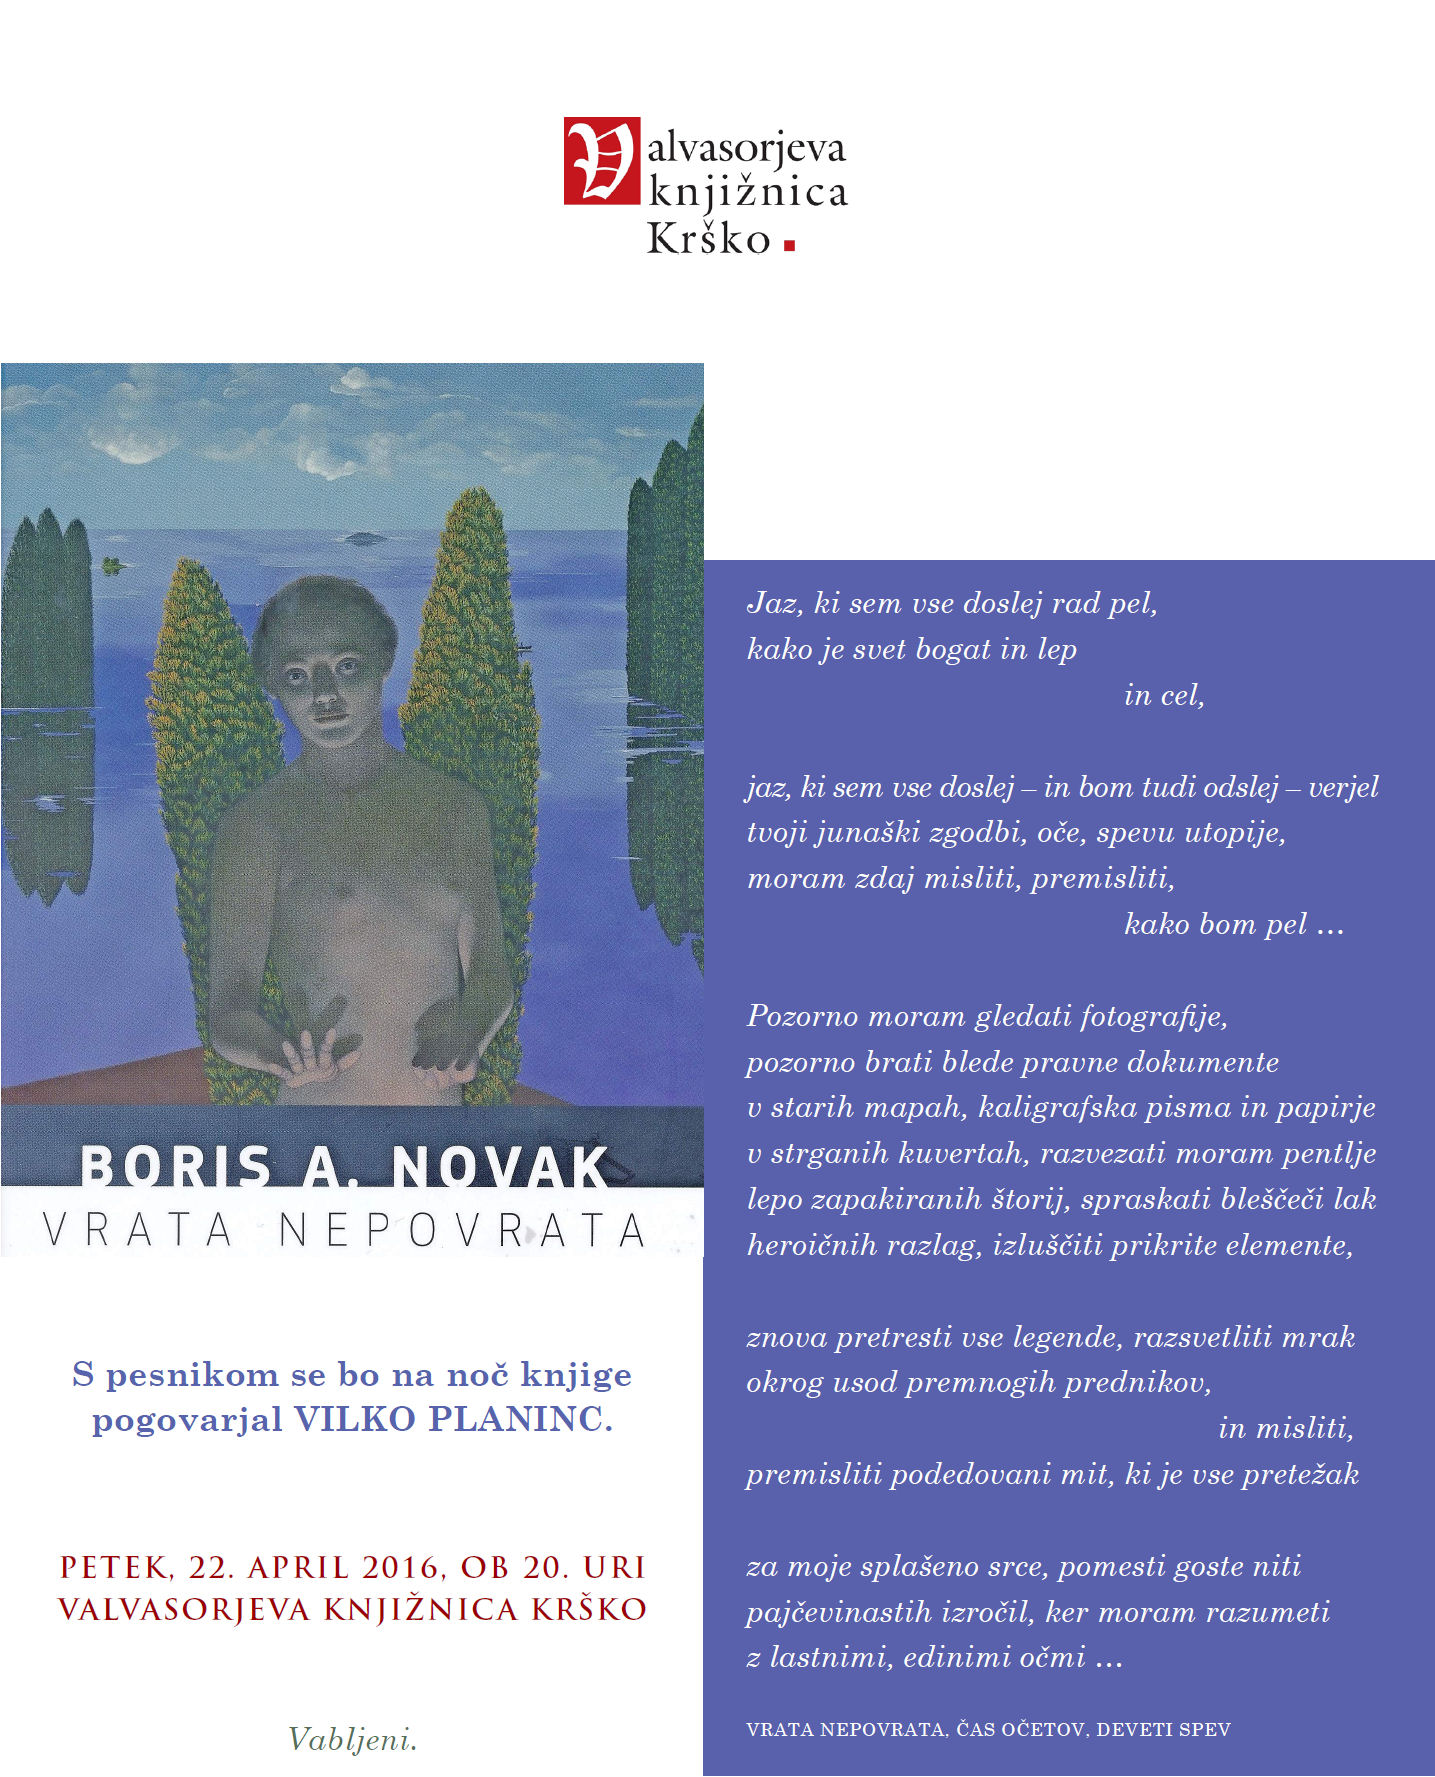 Boris A. Novak 22.4.2016